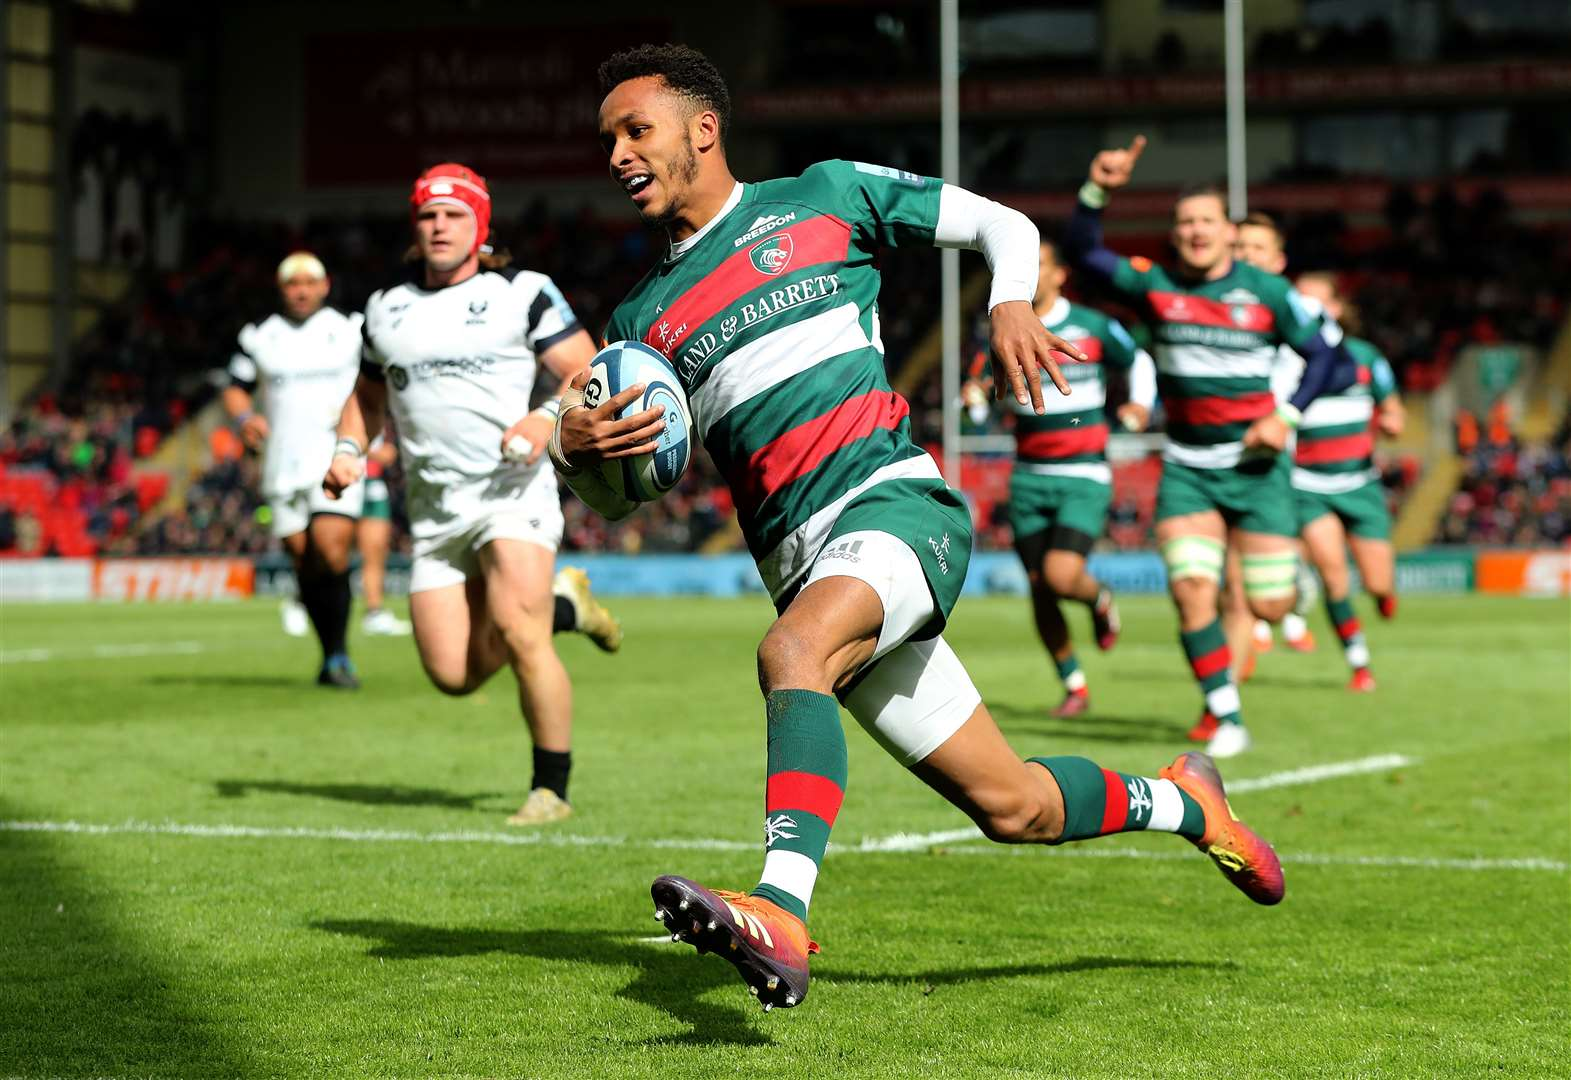 Leicester Tigers call-up for former Newark players